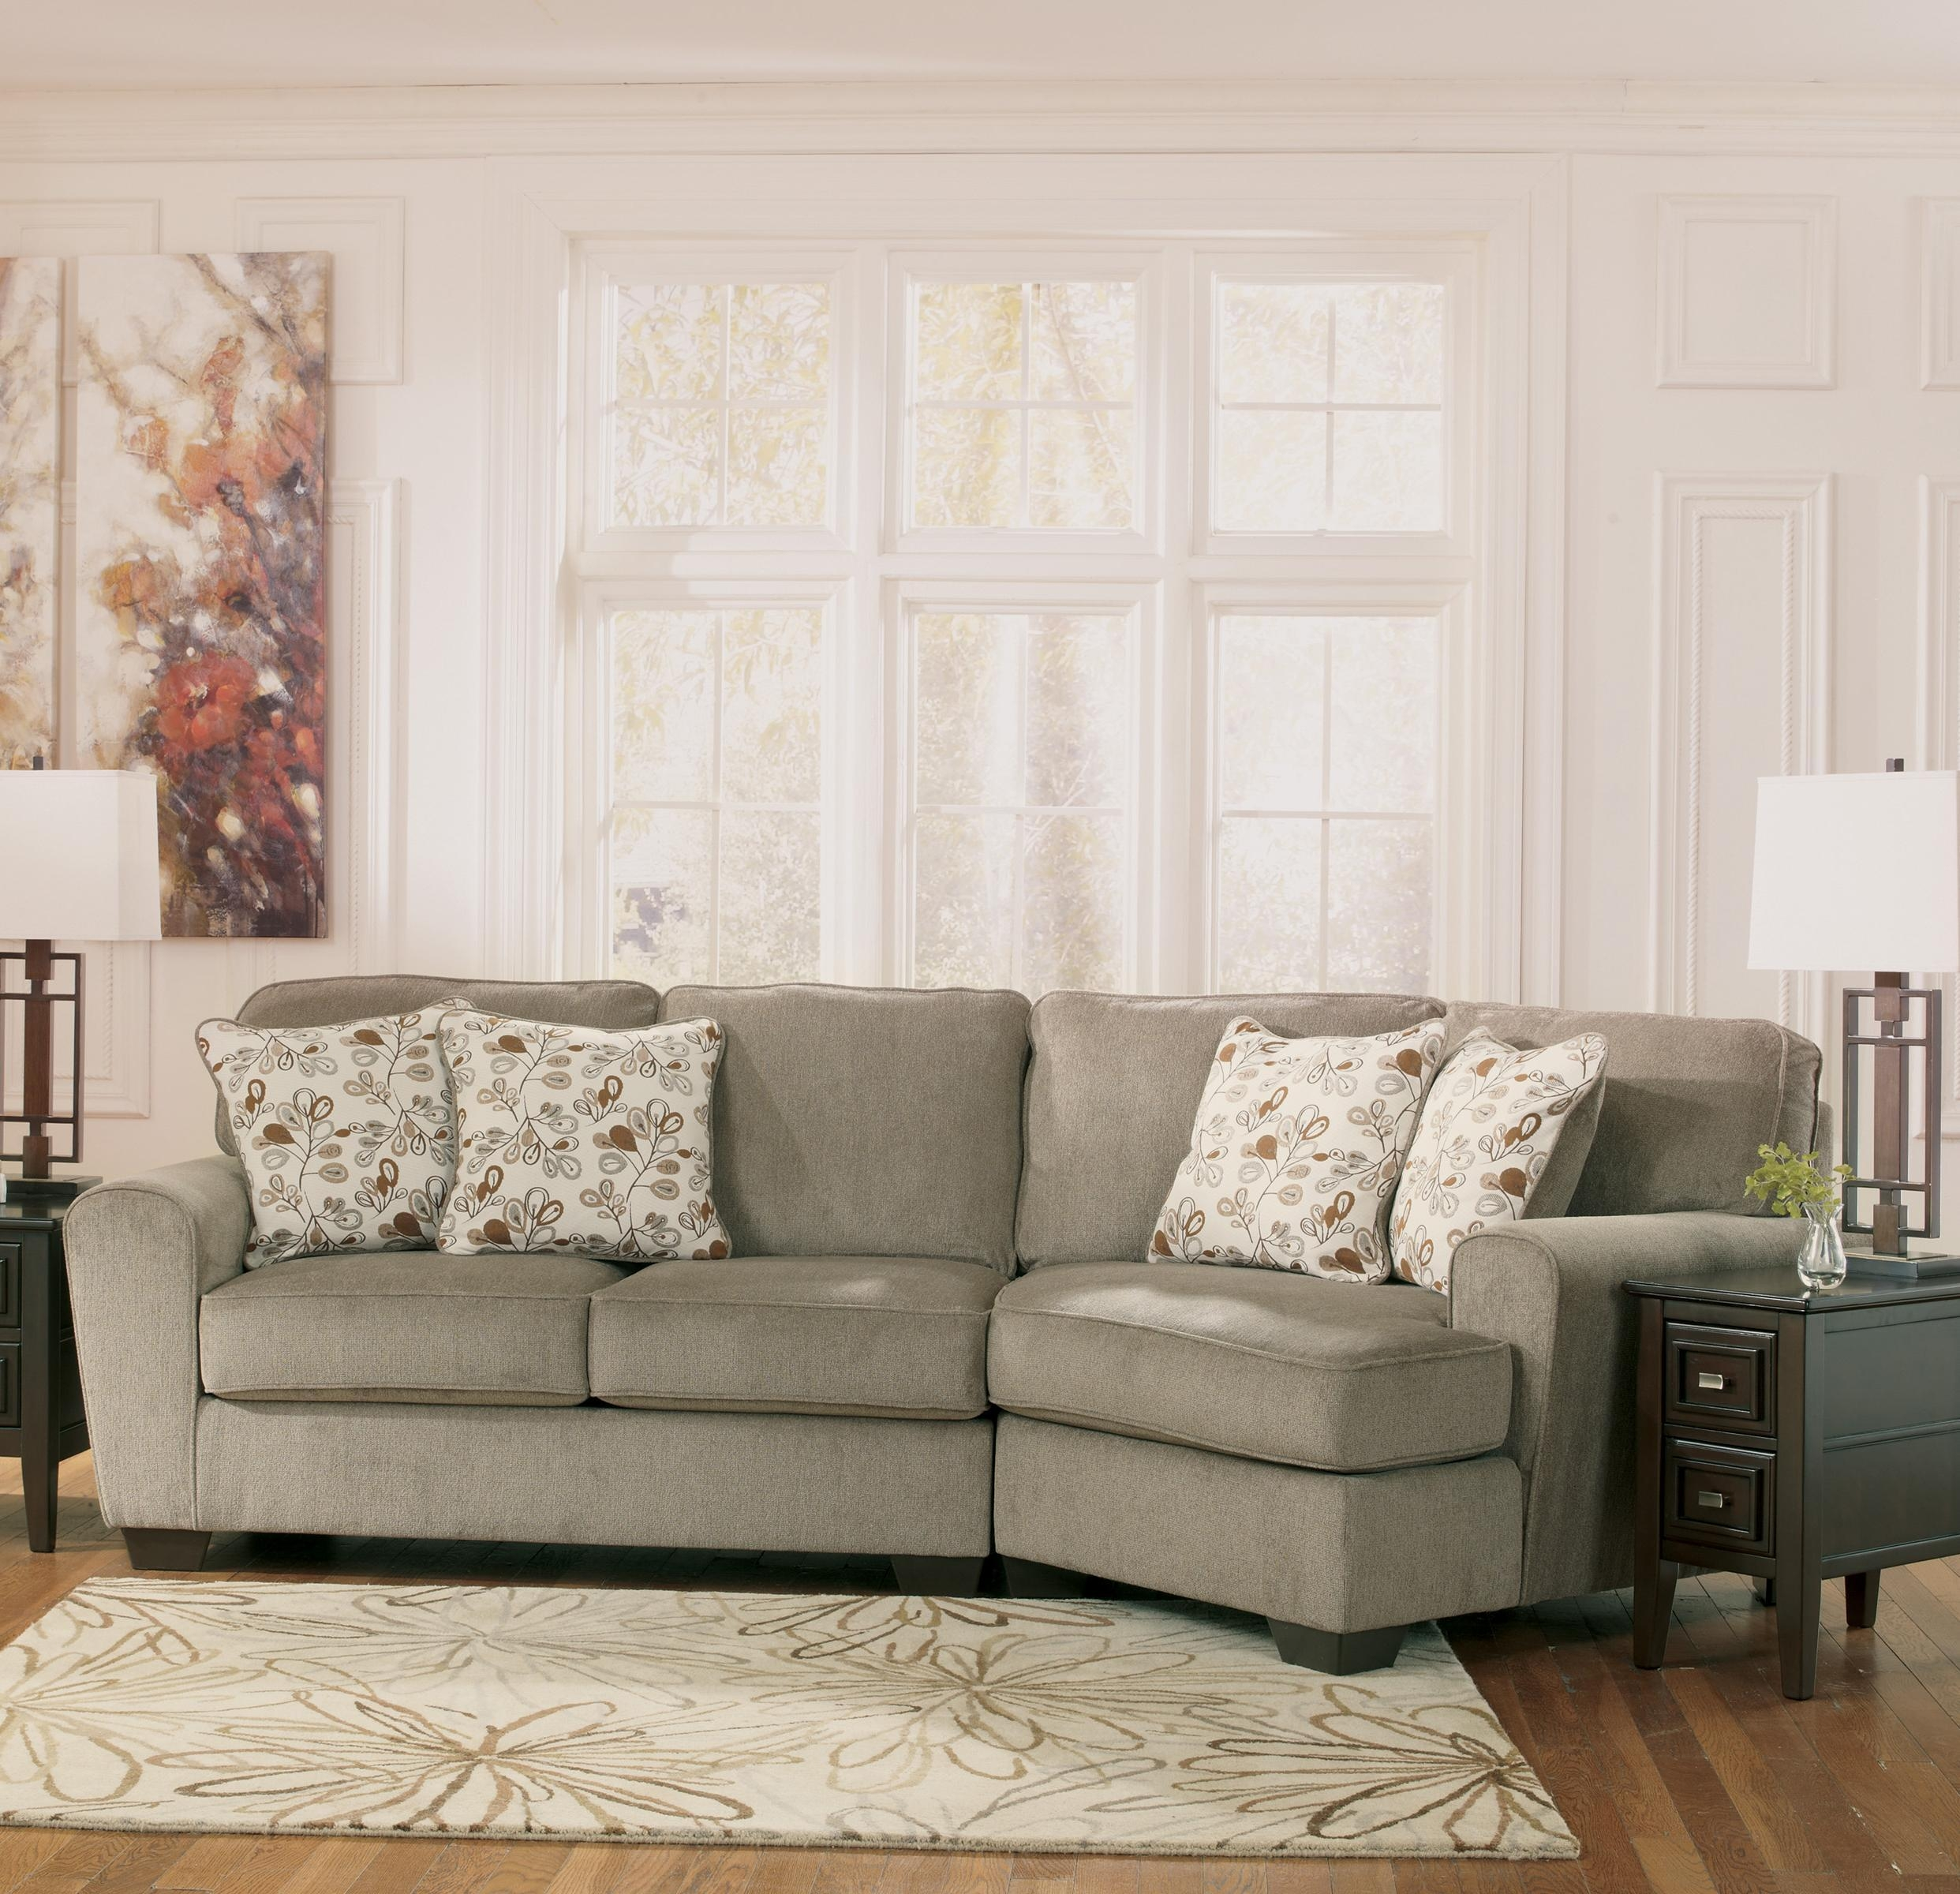 Ashley Furniture Patola Park – Patina 2 Piece Sectional With Right Within Small 2 Piece Sectional (Image 5 of 20)